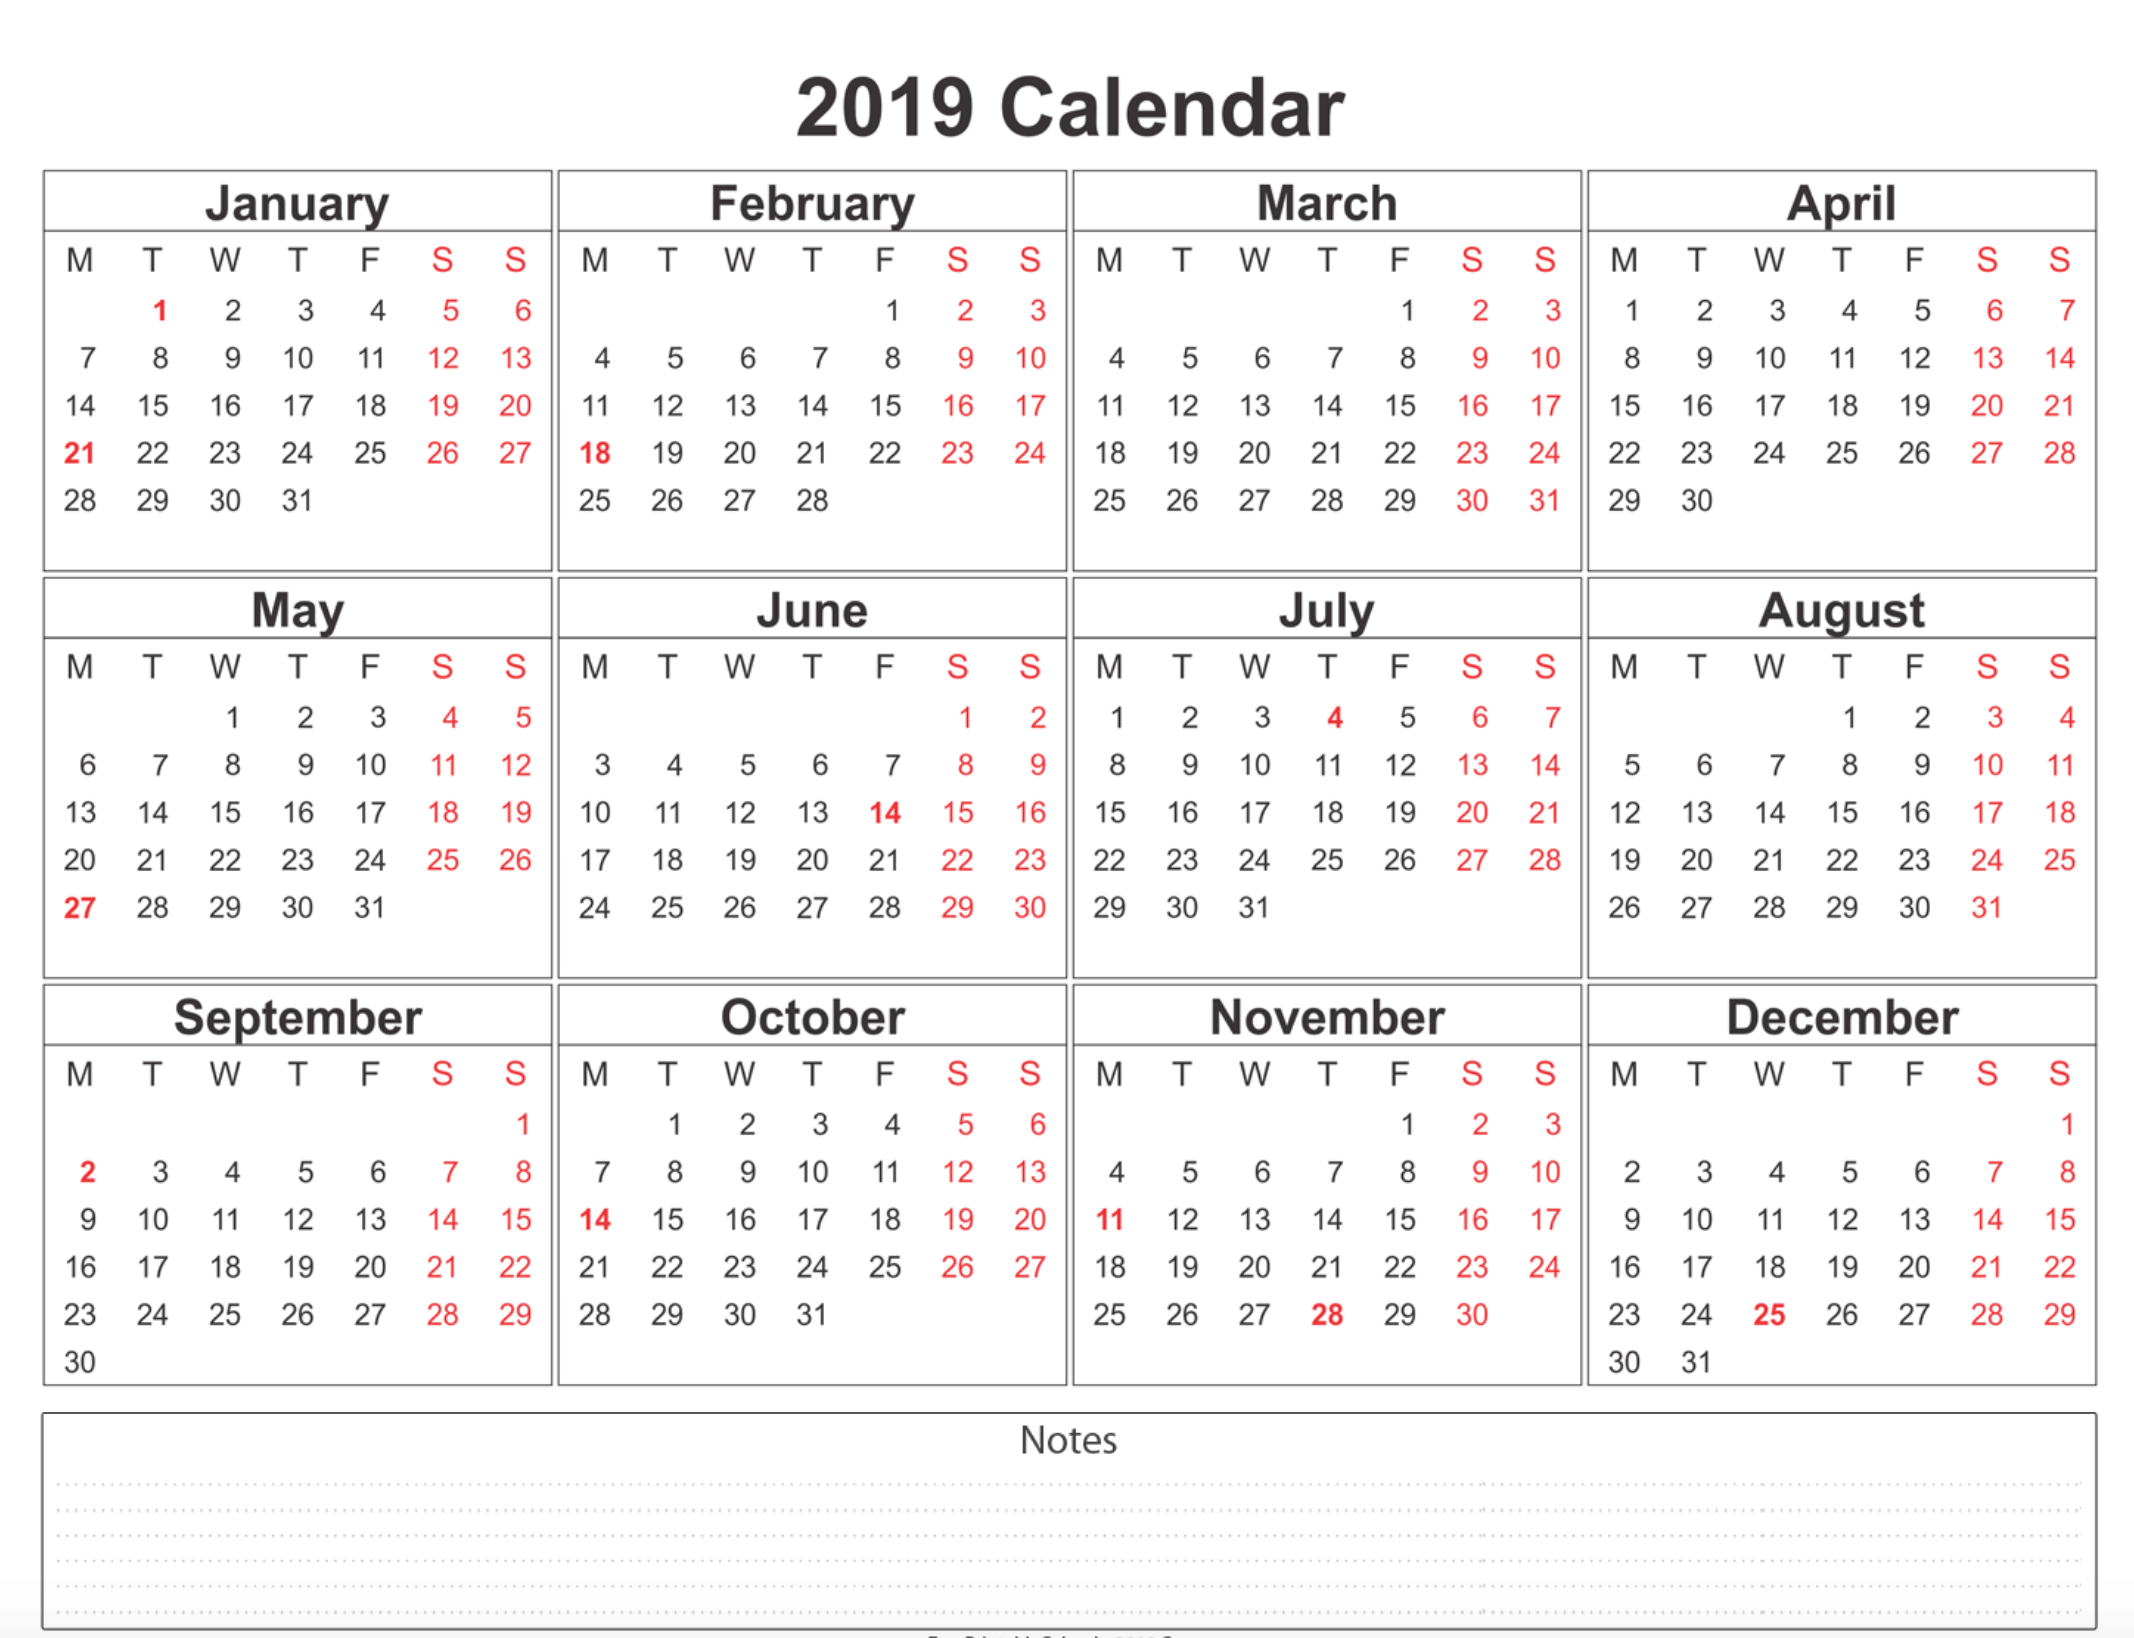 Year 2019 Calendar Template With Printable Templates Online